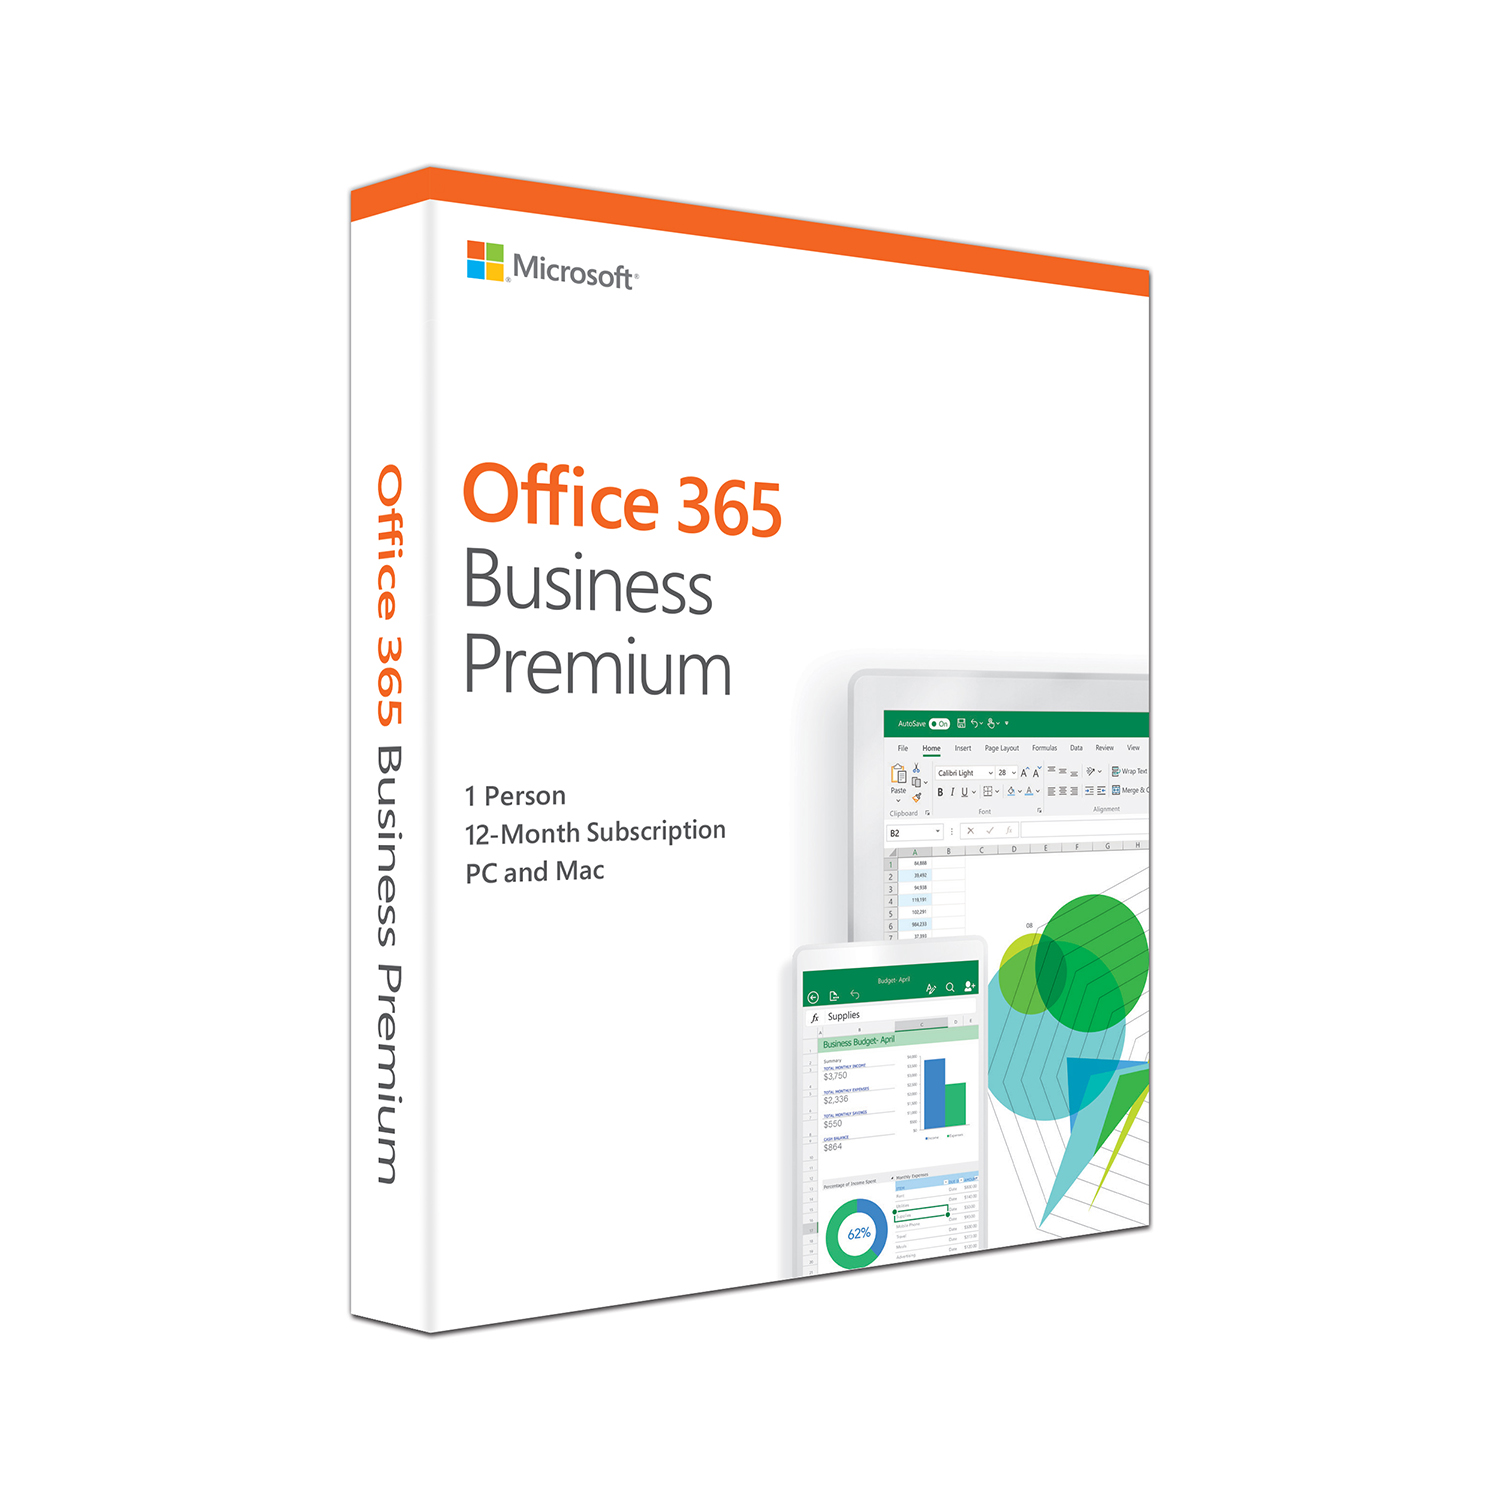 Self adhesive labels Microsoft Office 365 Business Premium Software 2019 Ref KLQ-00388